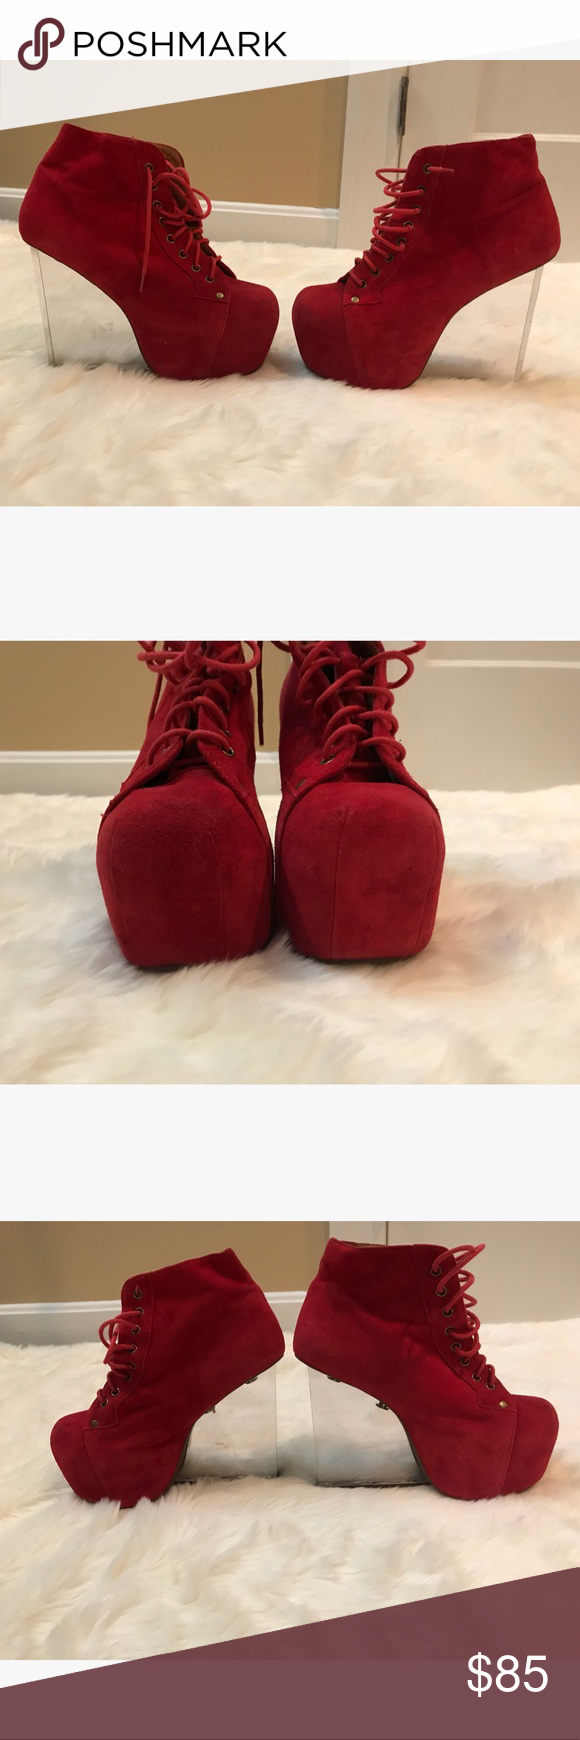 RARE Jeffrey Campbell Dina in Red (Size 6.5) These Jeffrey